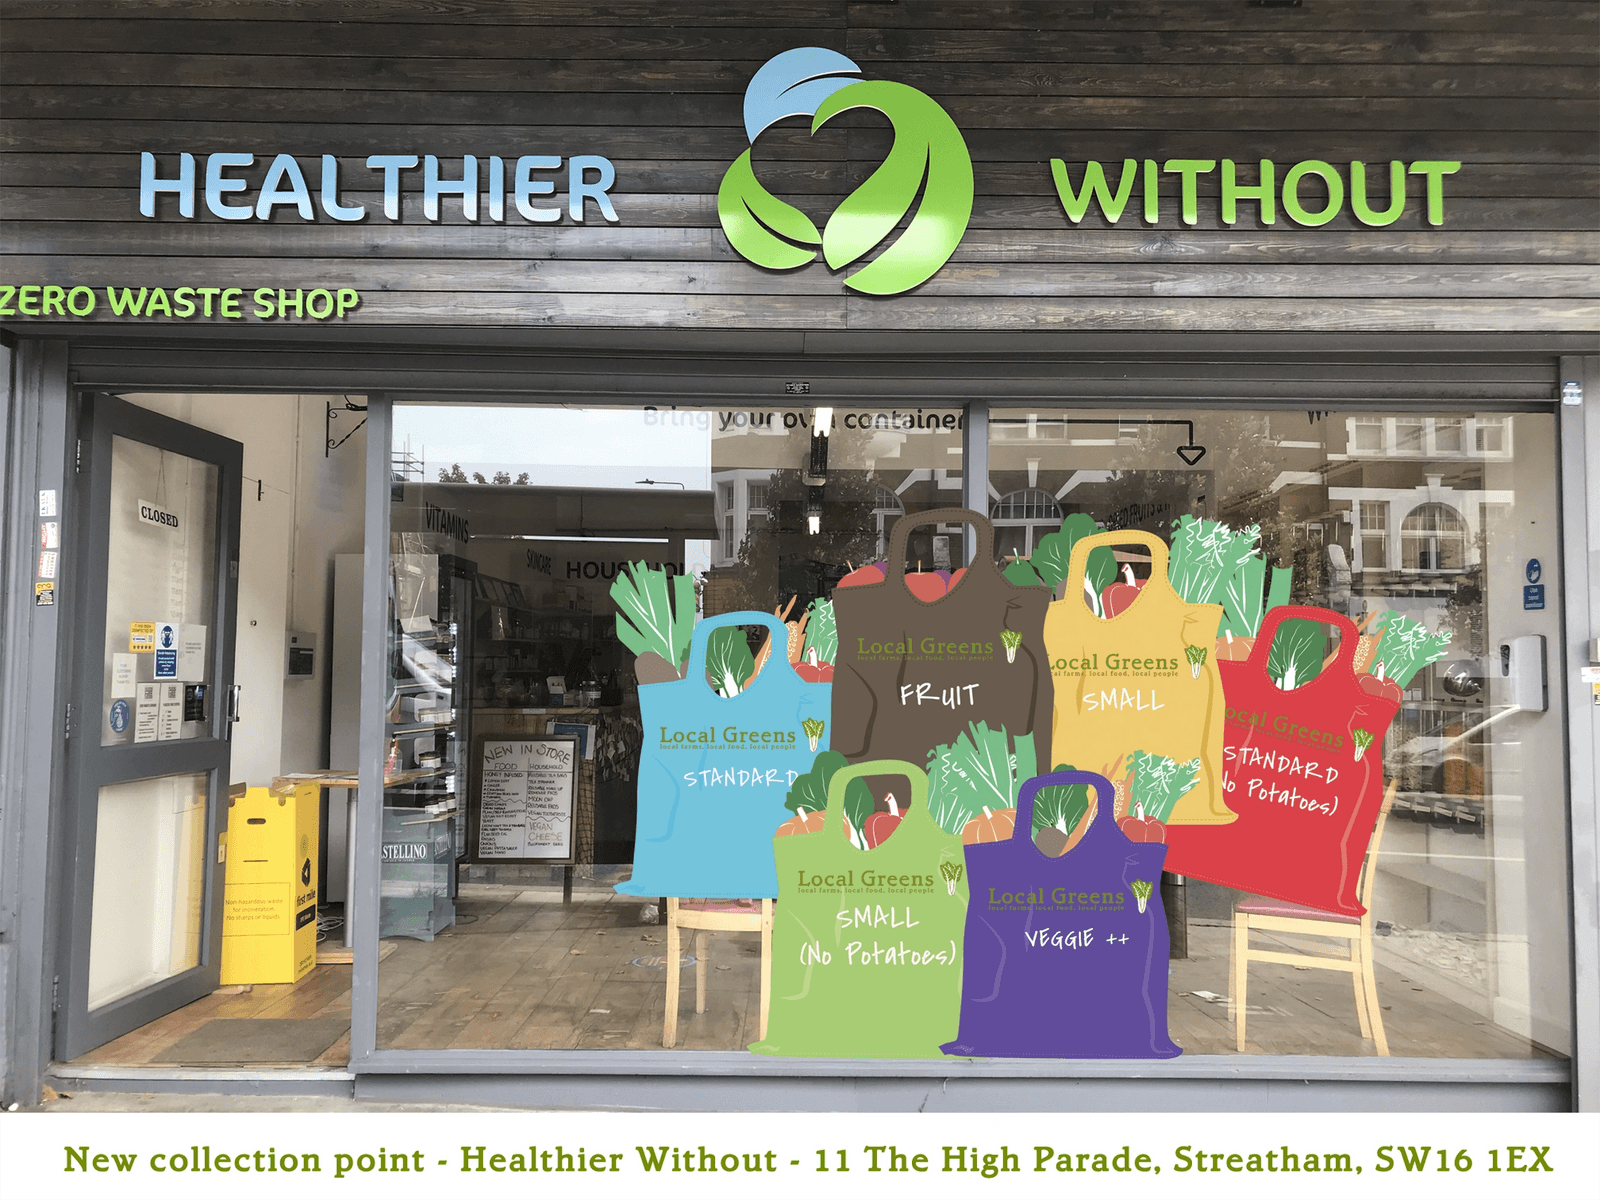 Healthier Without